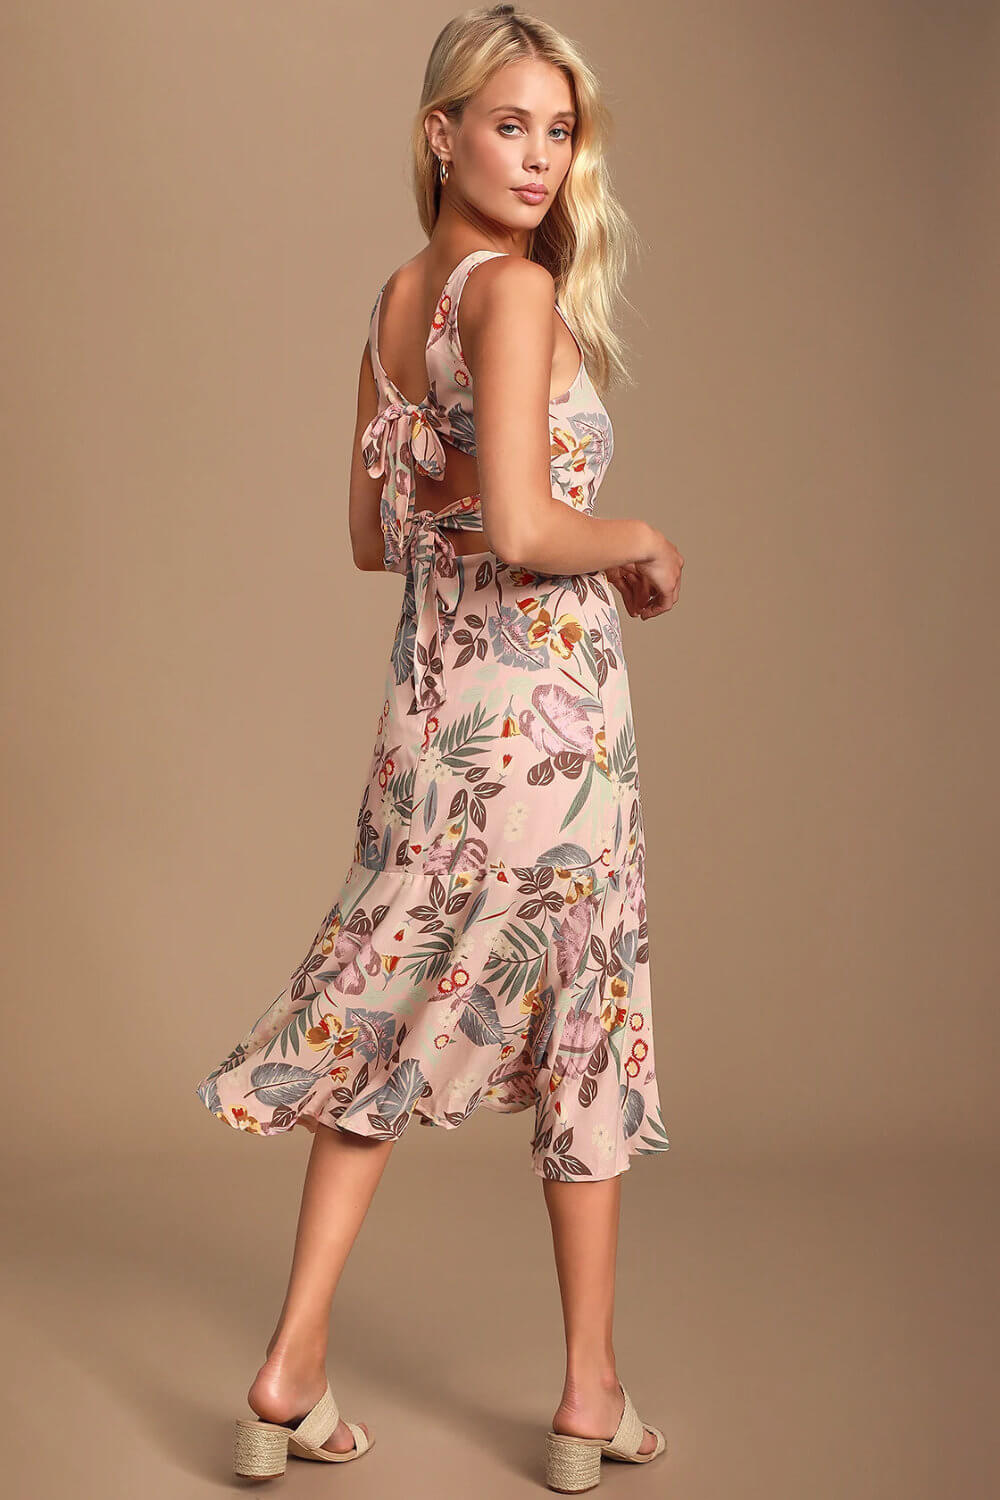 Affordable Wedding Guest Dresses What to Wear to A Wedding as A Female Guest